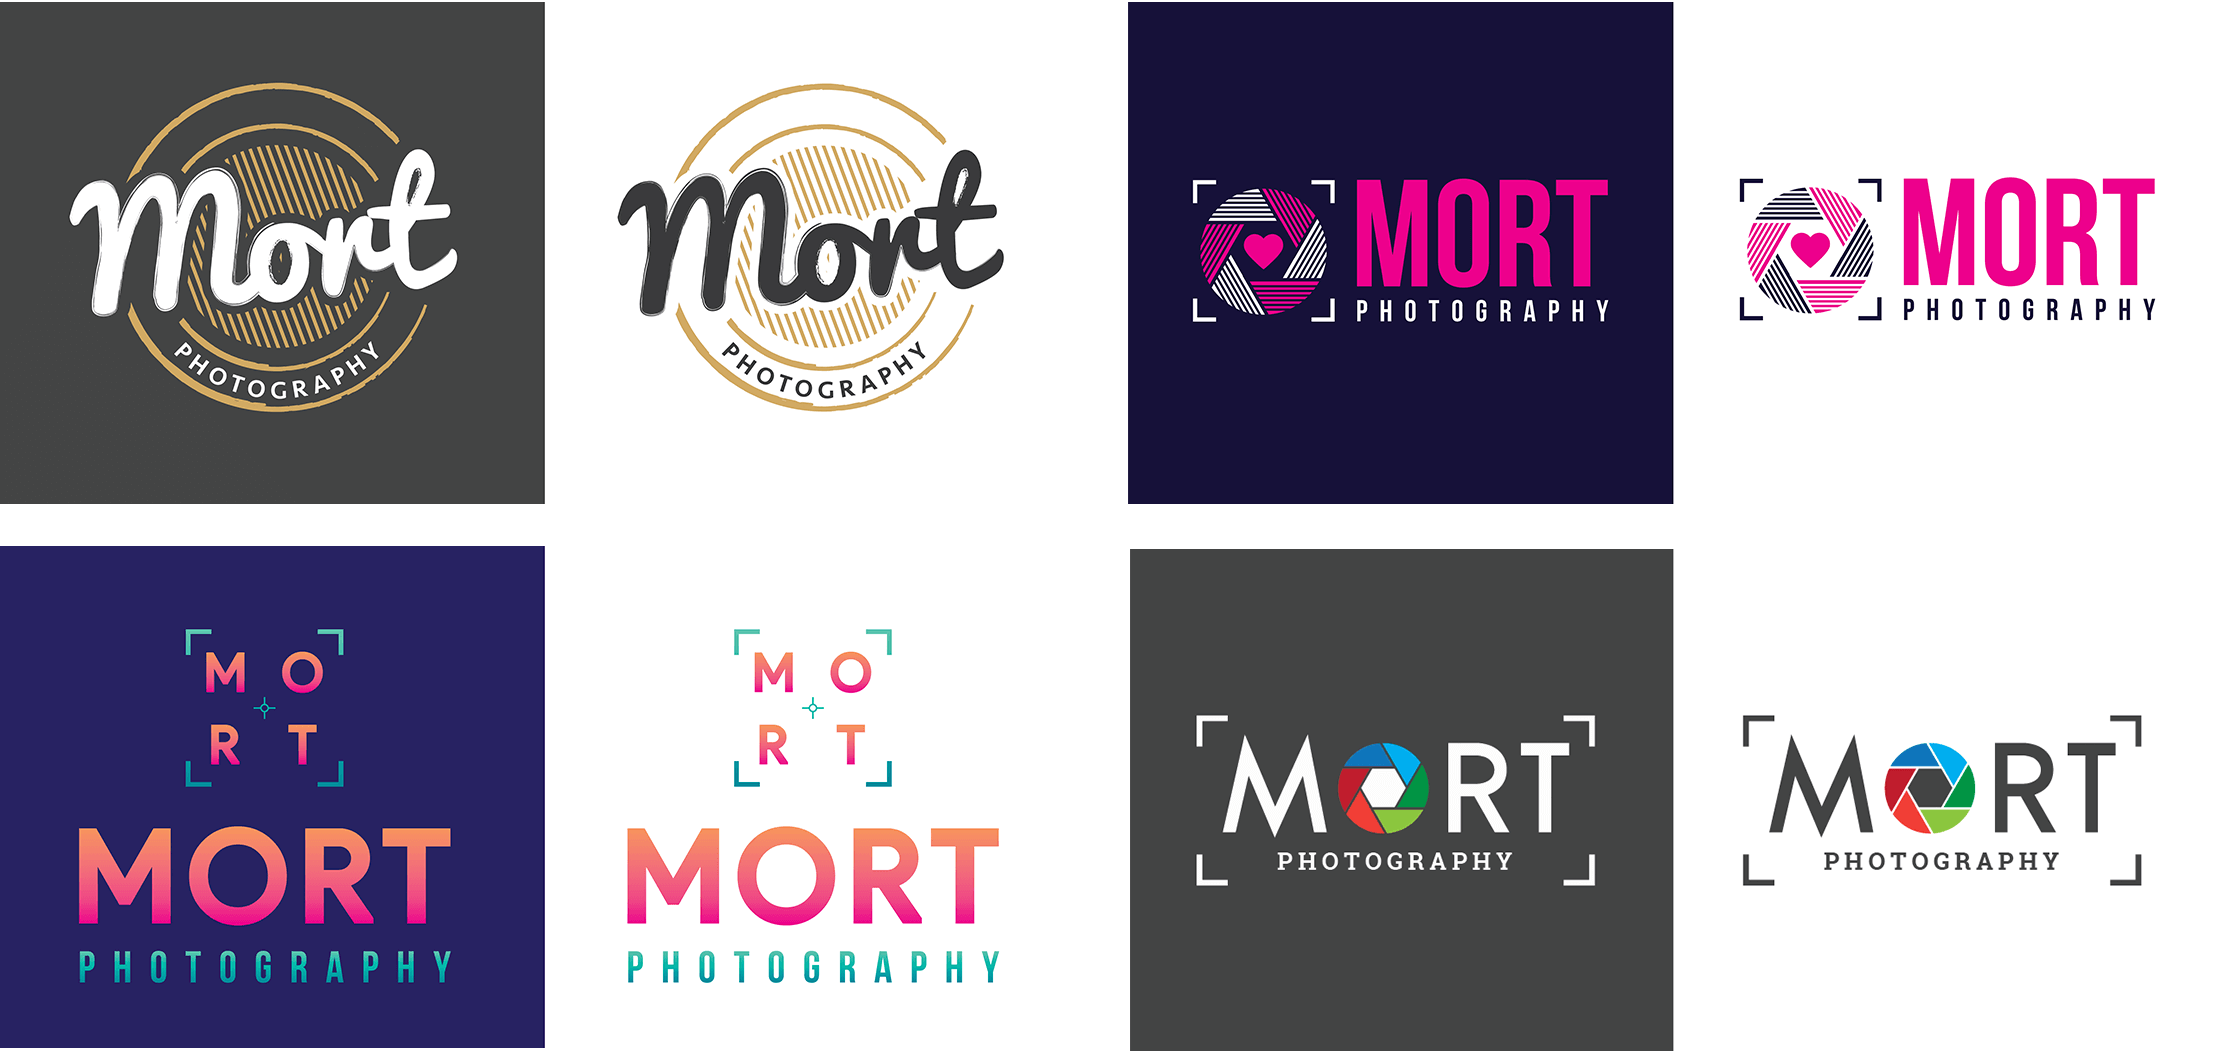 Initial ideas for the logo